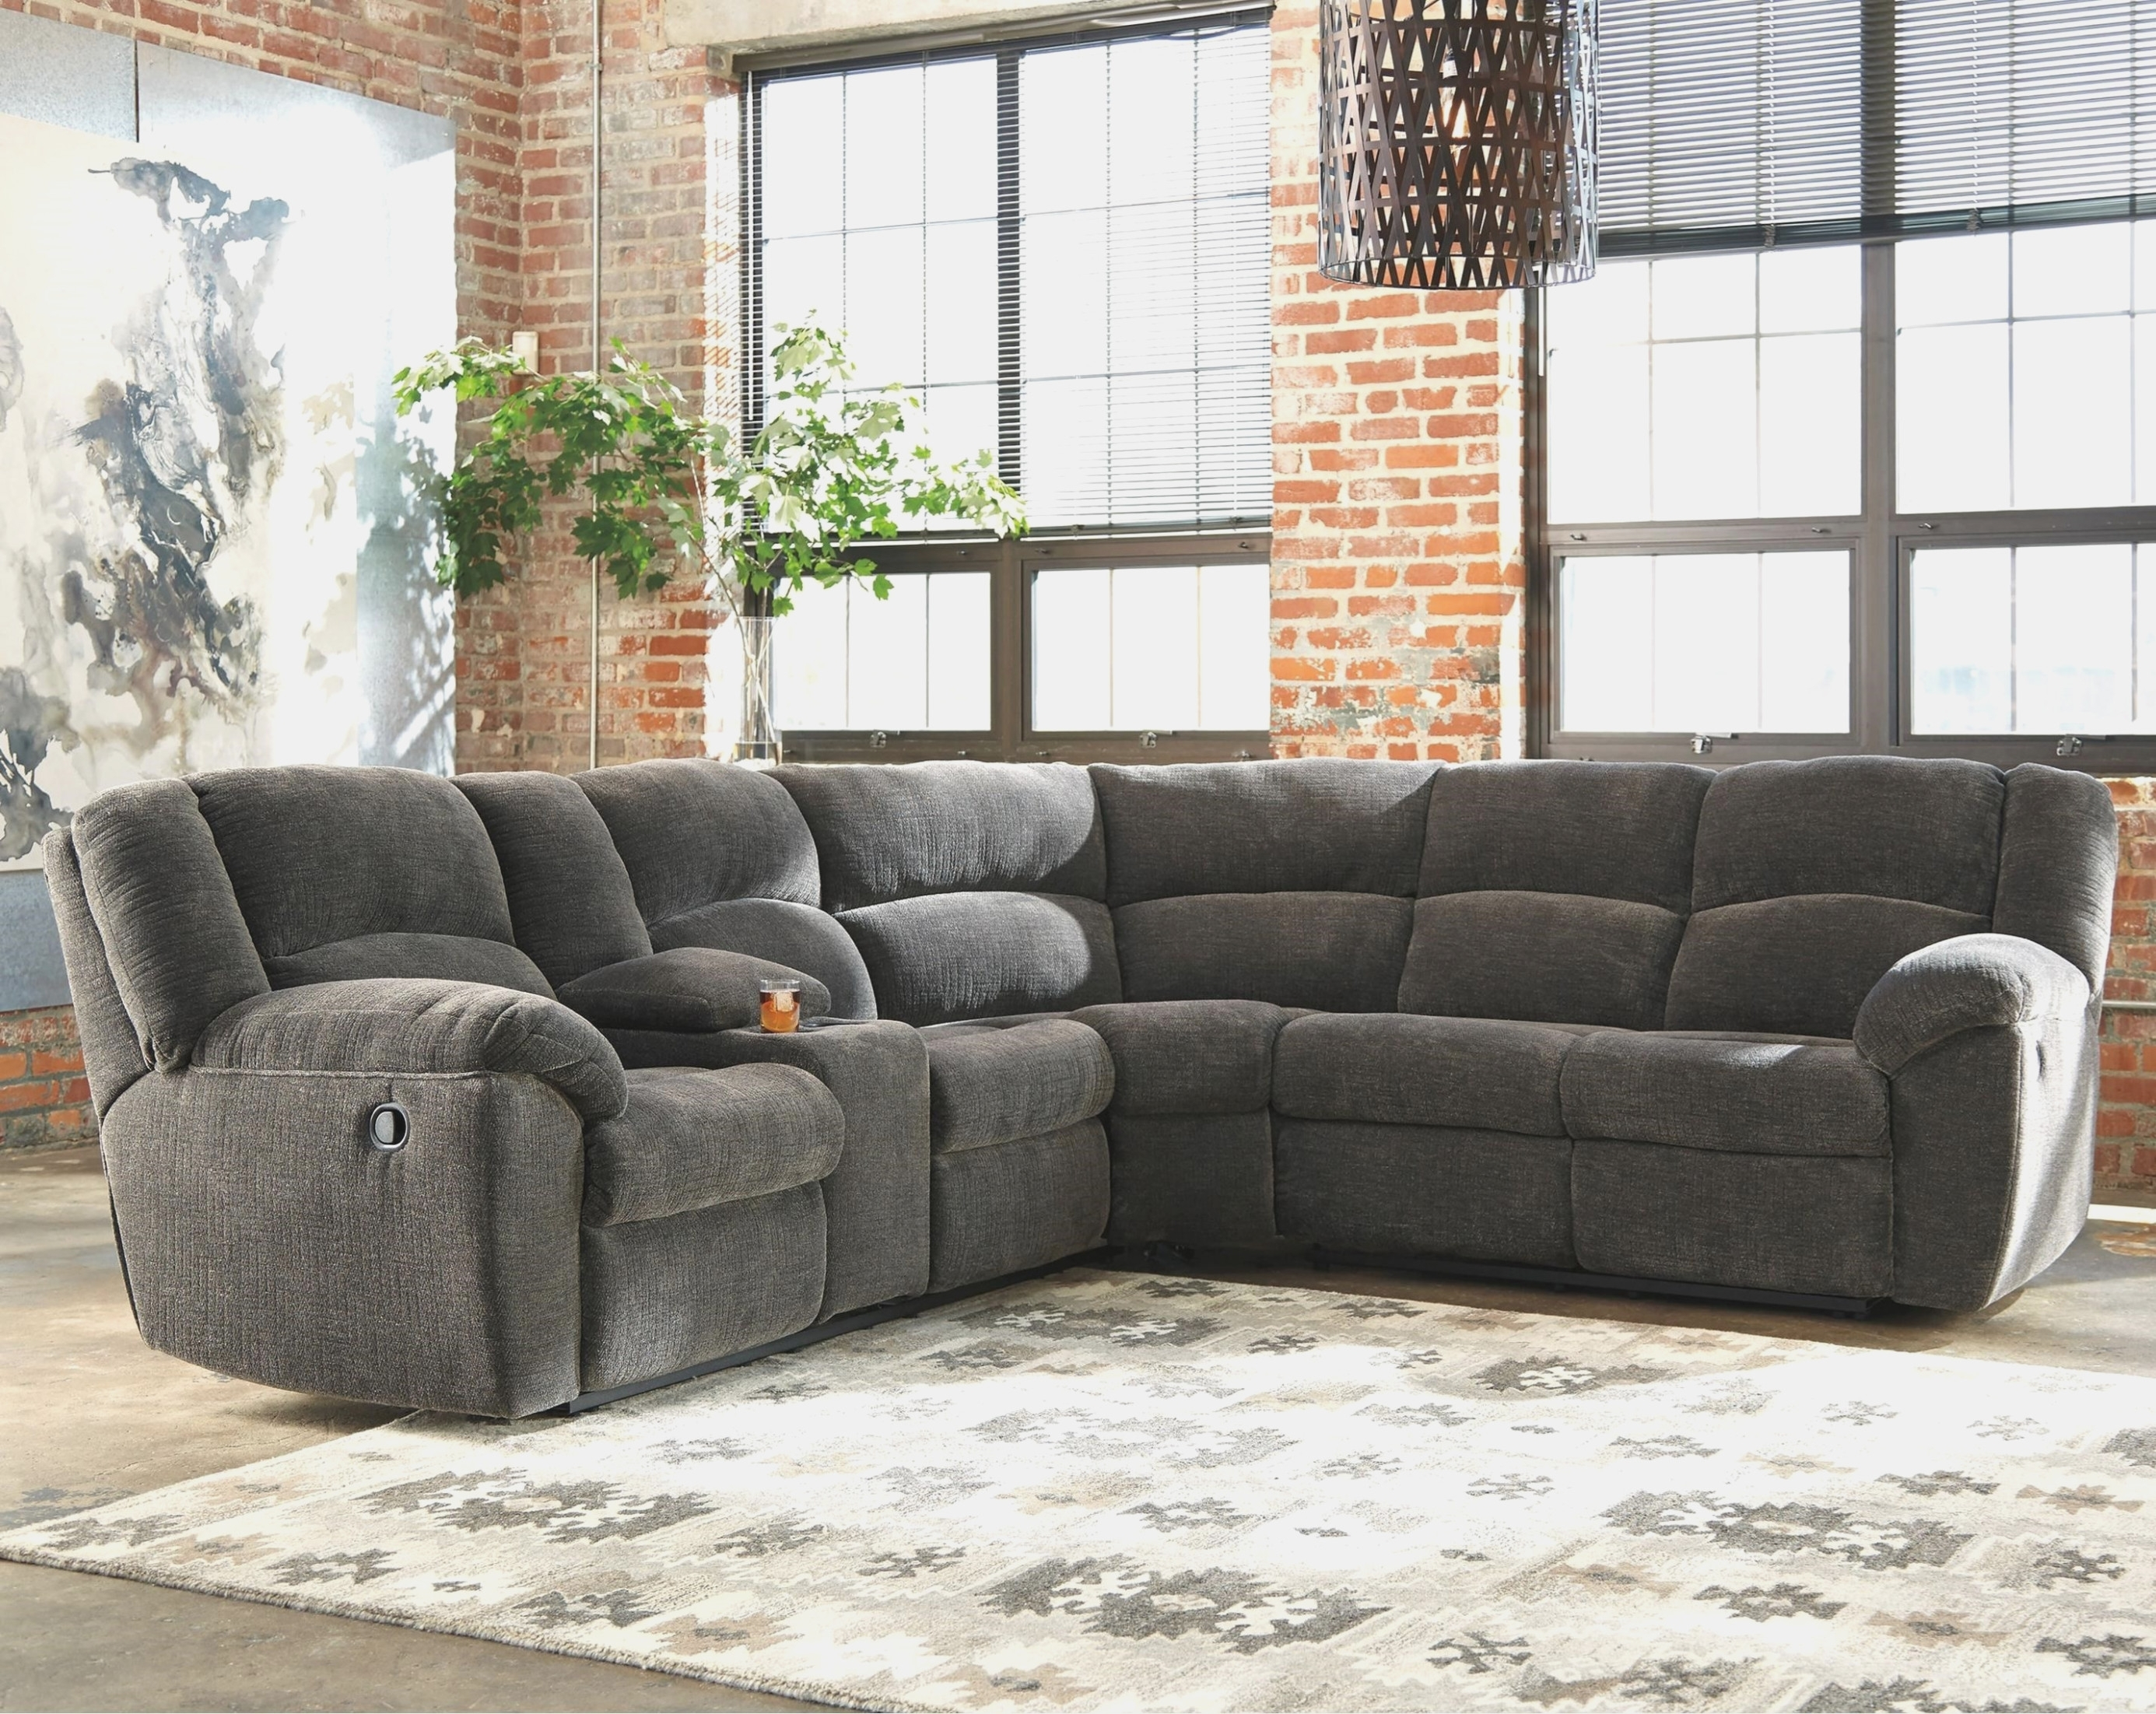 Fabric Sectional Sofa With Power Recliner | Baci Living Room for Declan 3 Piece Power Reclining Sectionals With Right Facing Console Loveseat (Image 13 of 30)